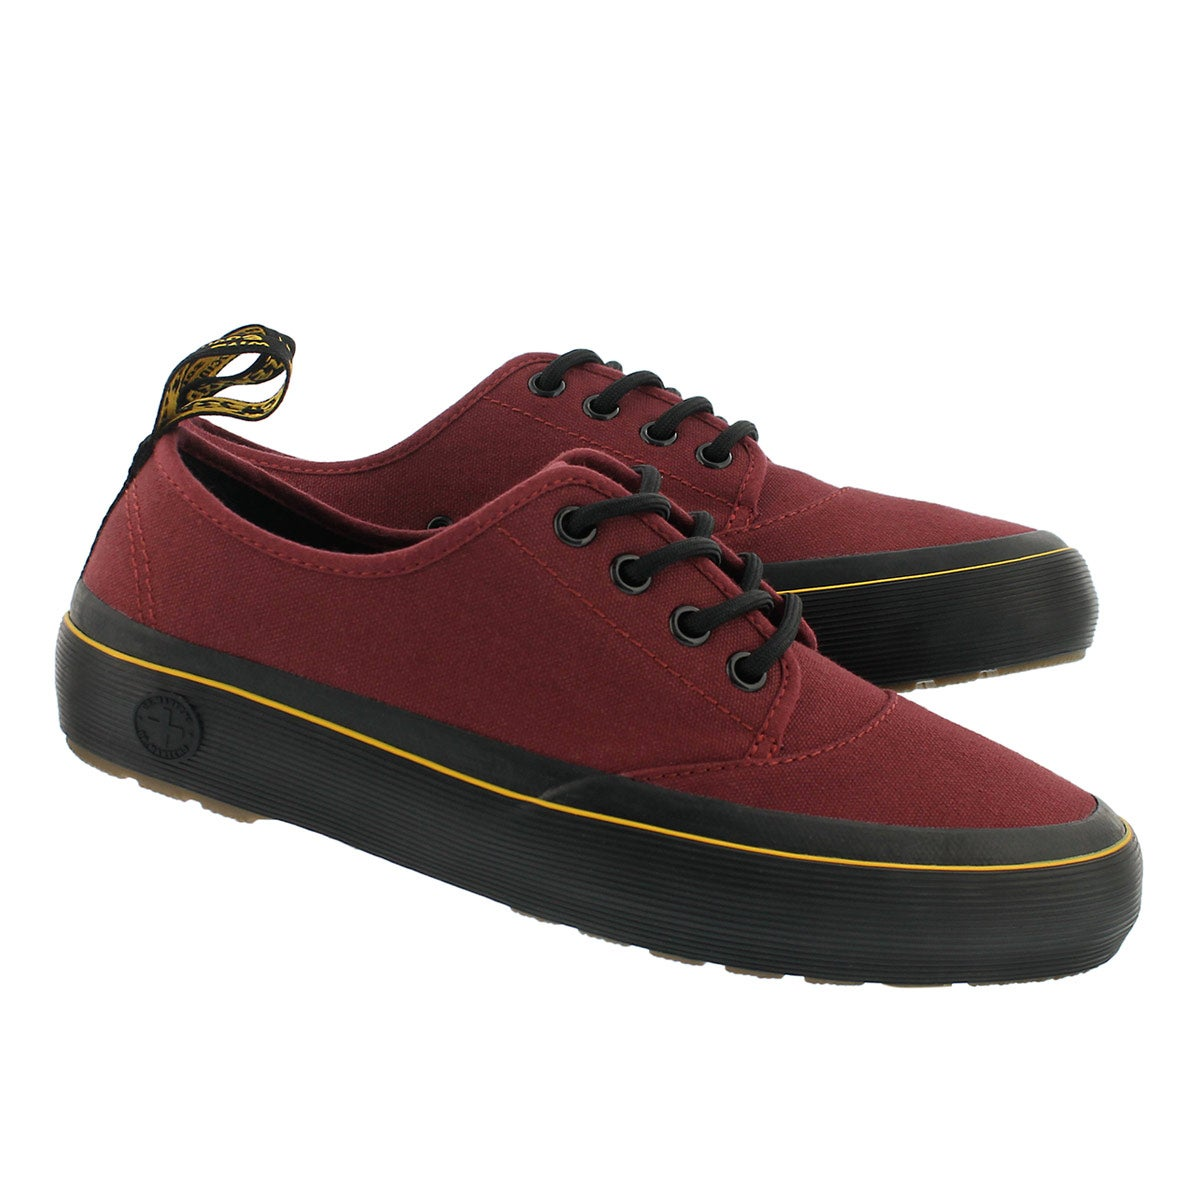 Lds Jacy cherry red lace up sneaker